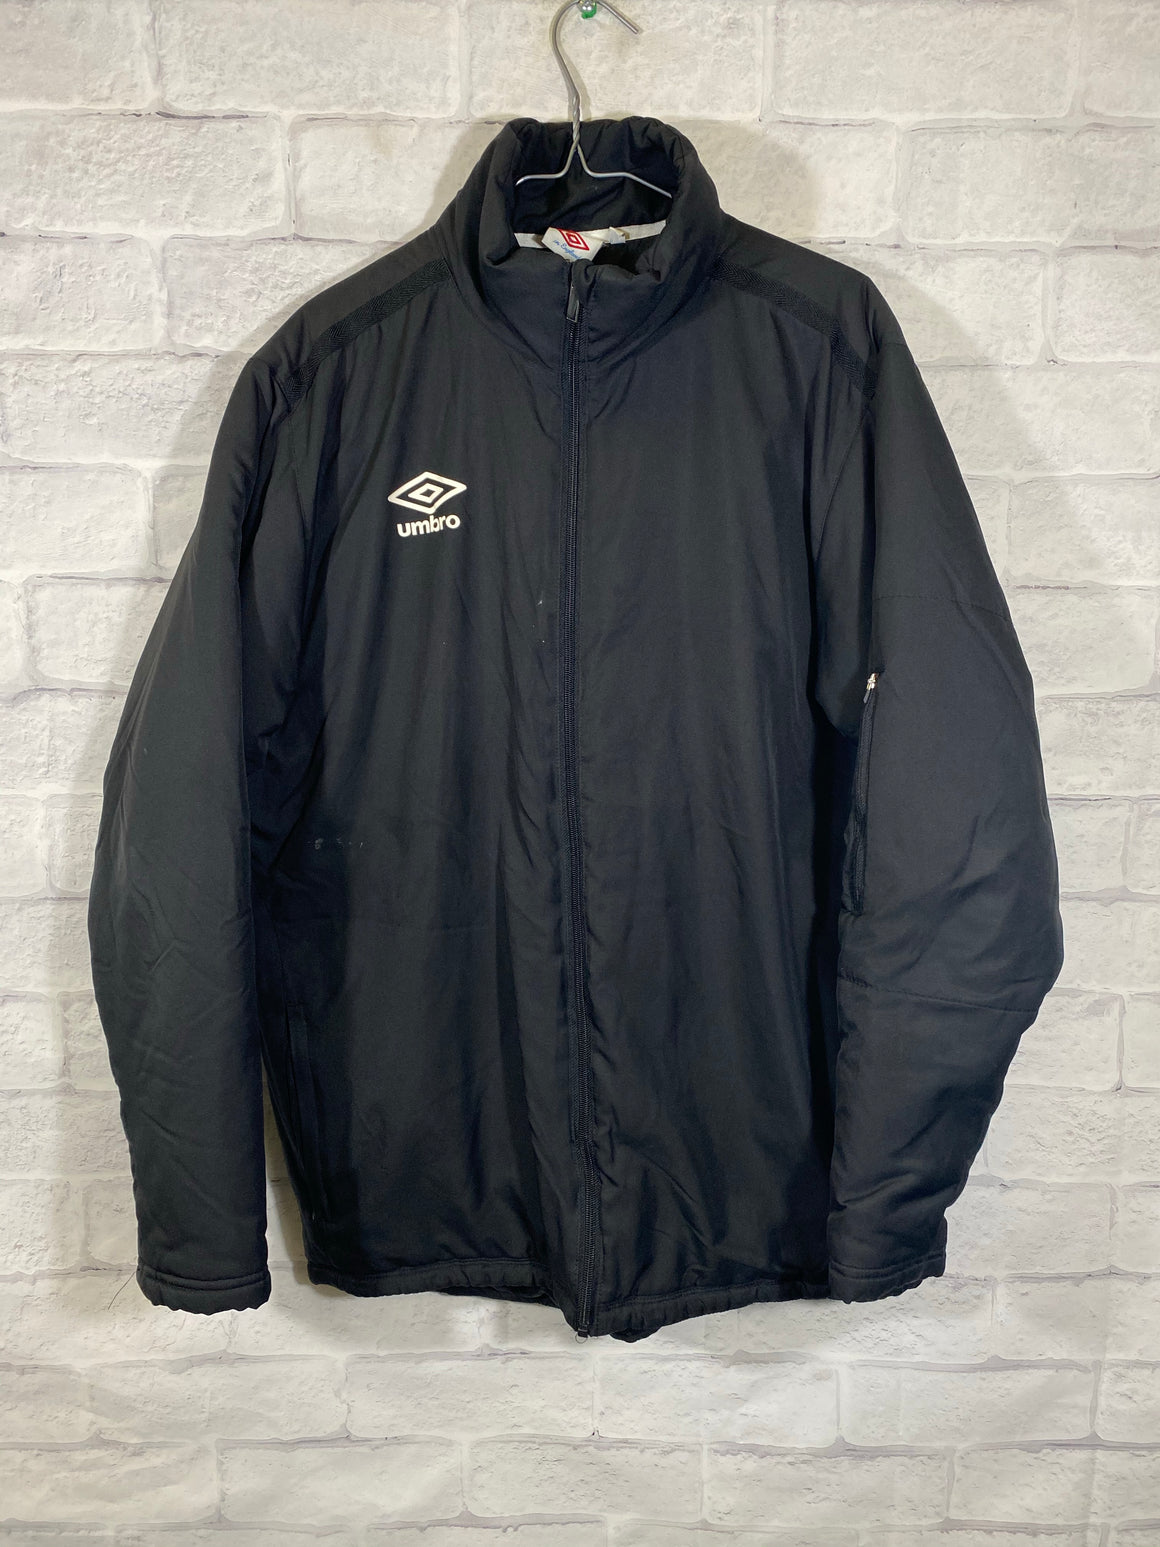 Umbro light puffer jacket SZ mens Large